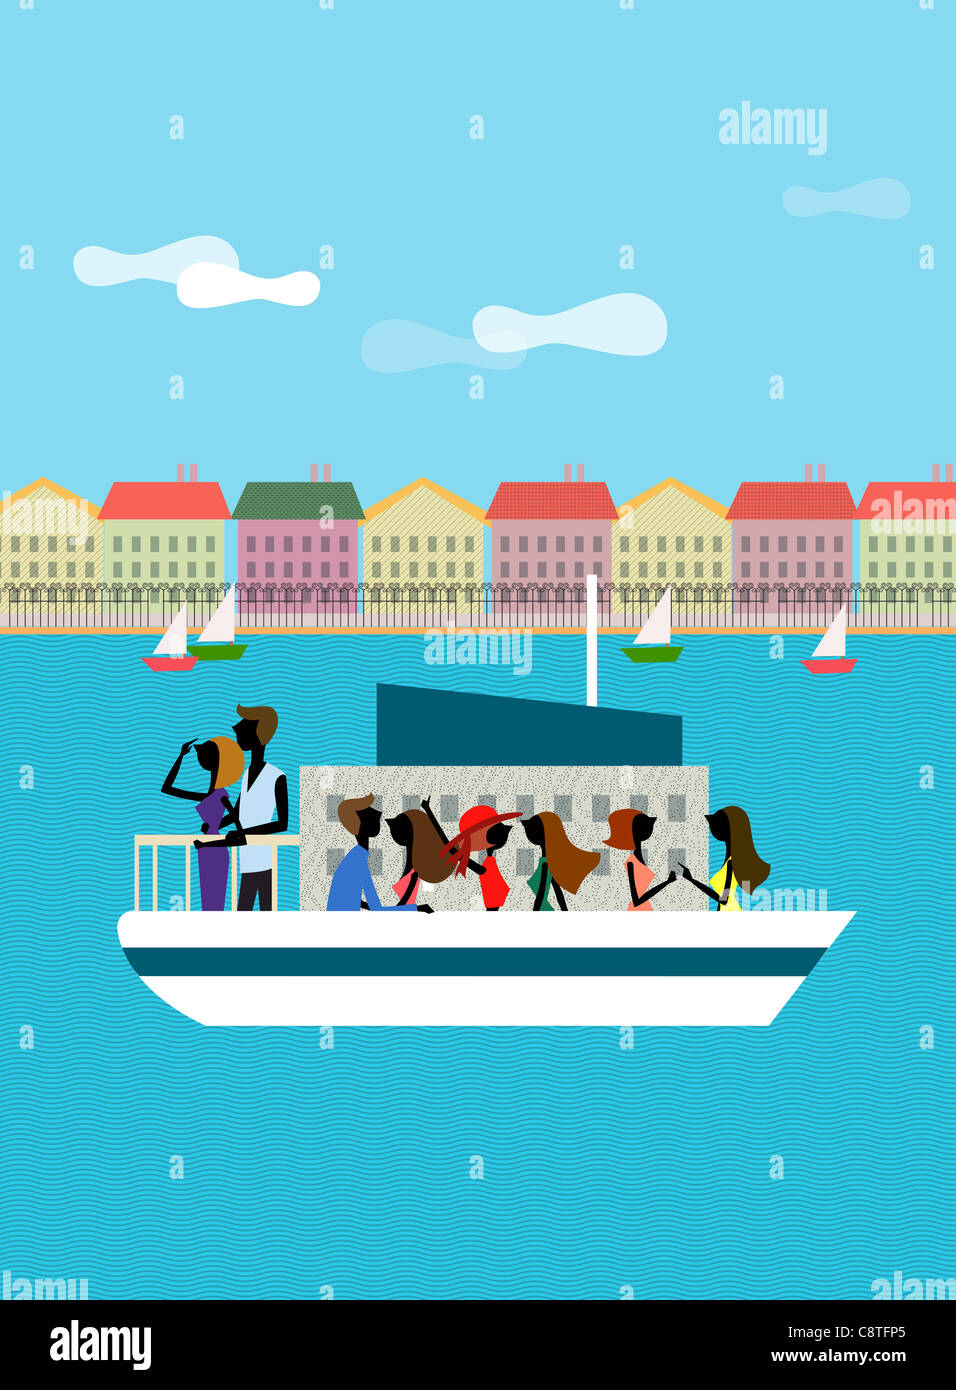 Couple On Ferry Boat - Stock Image